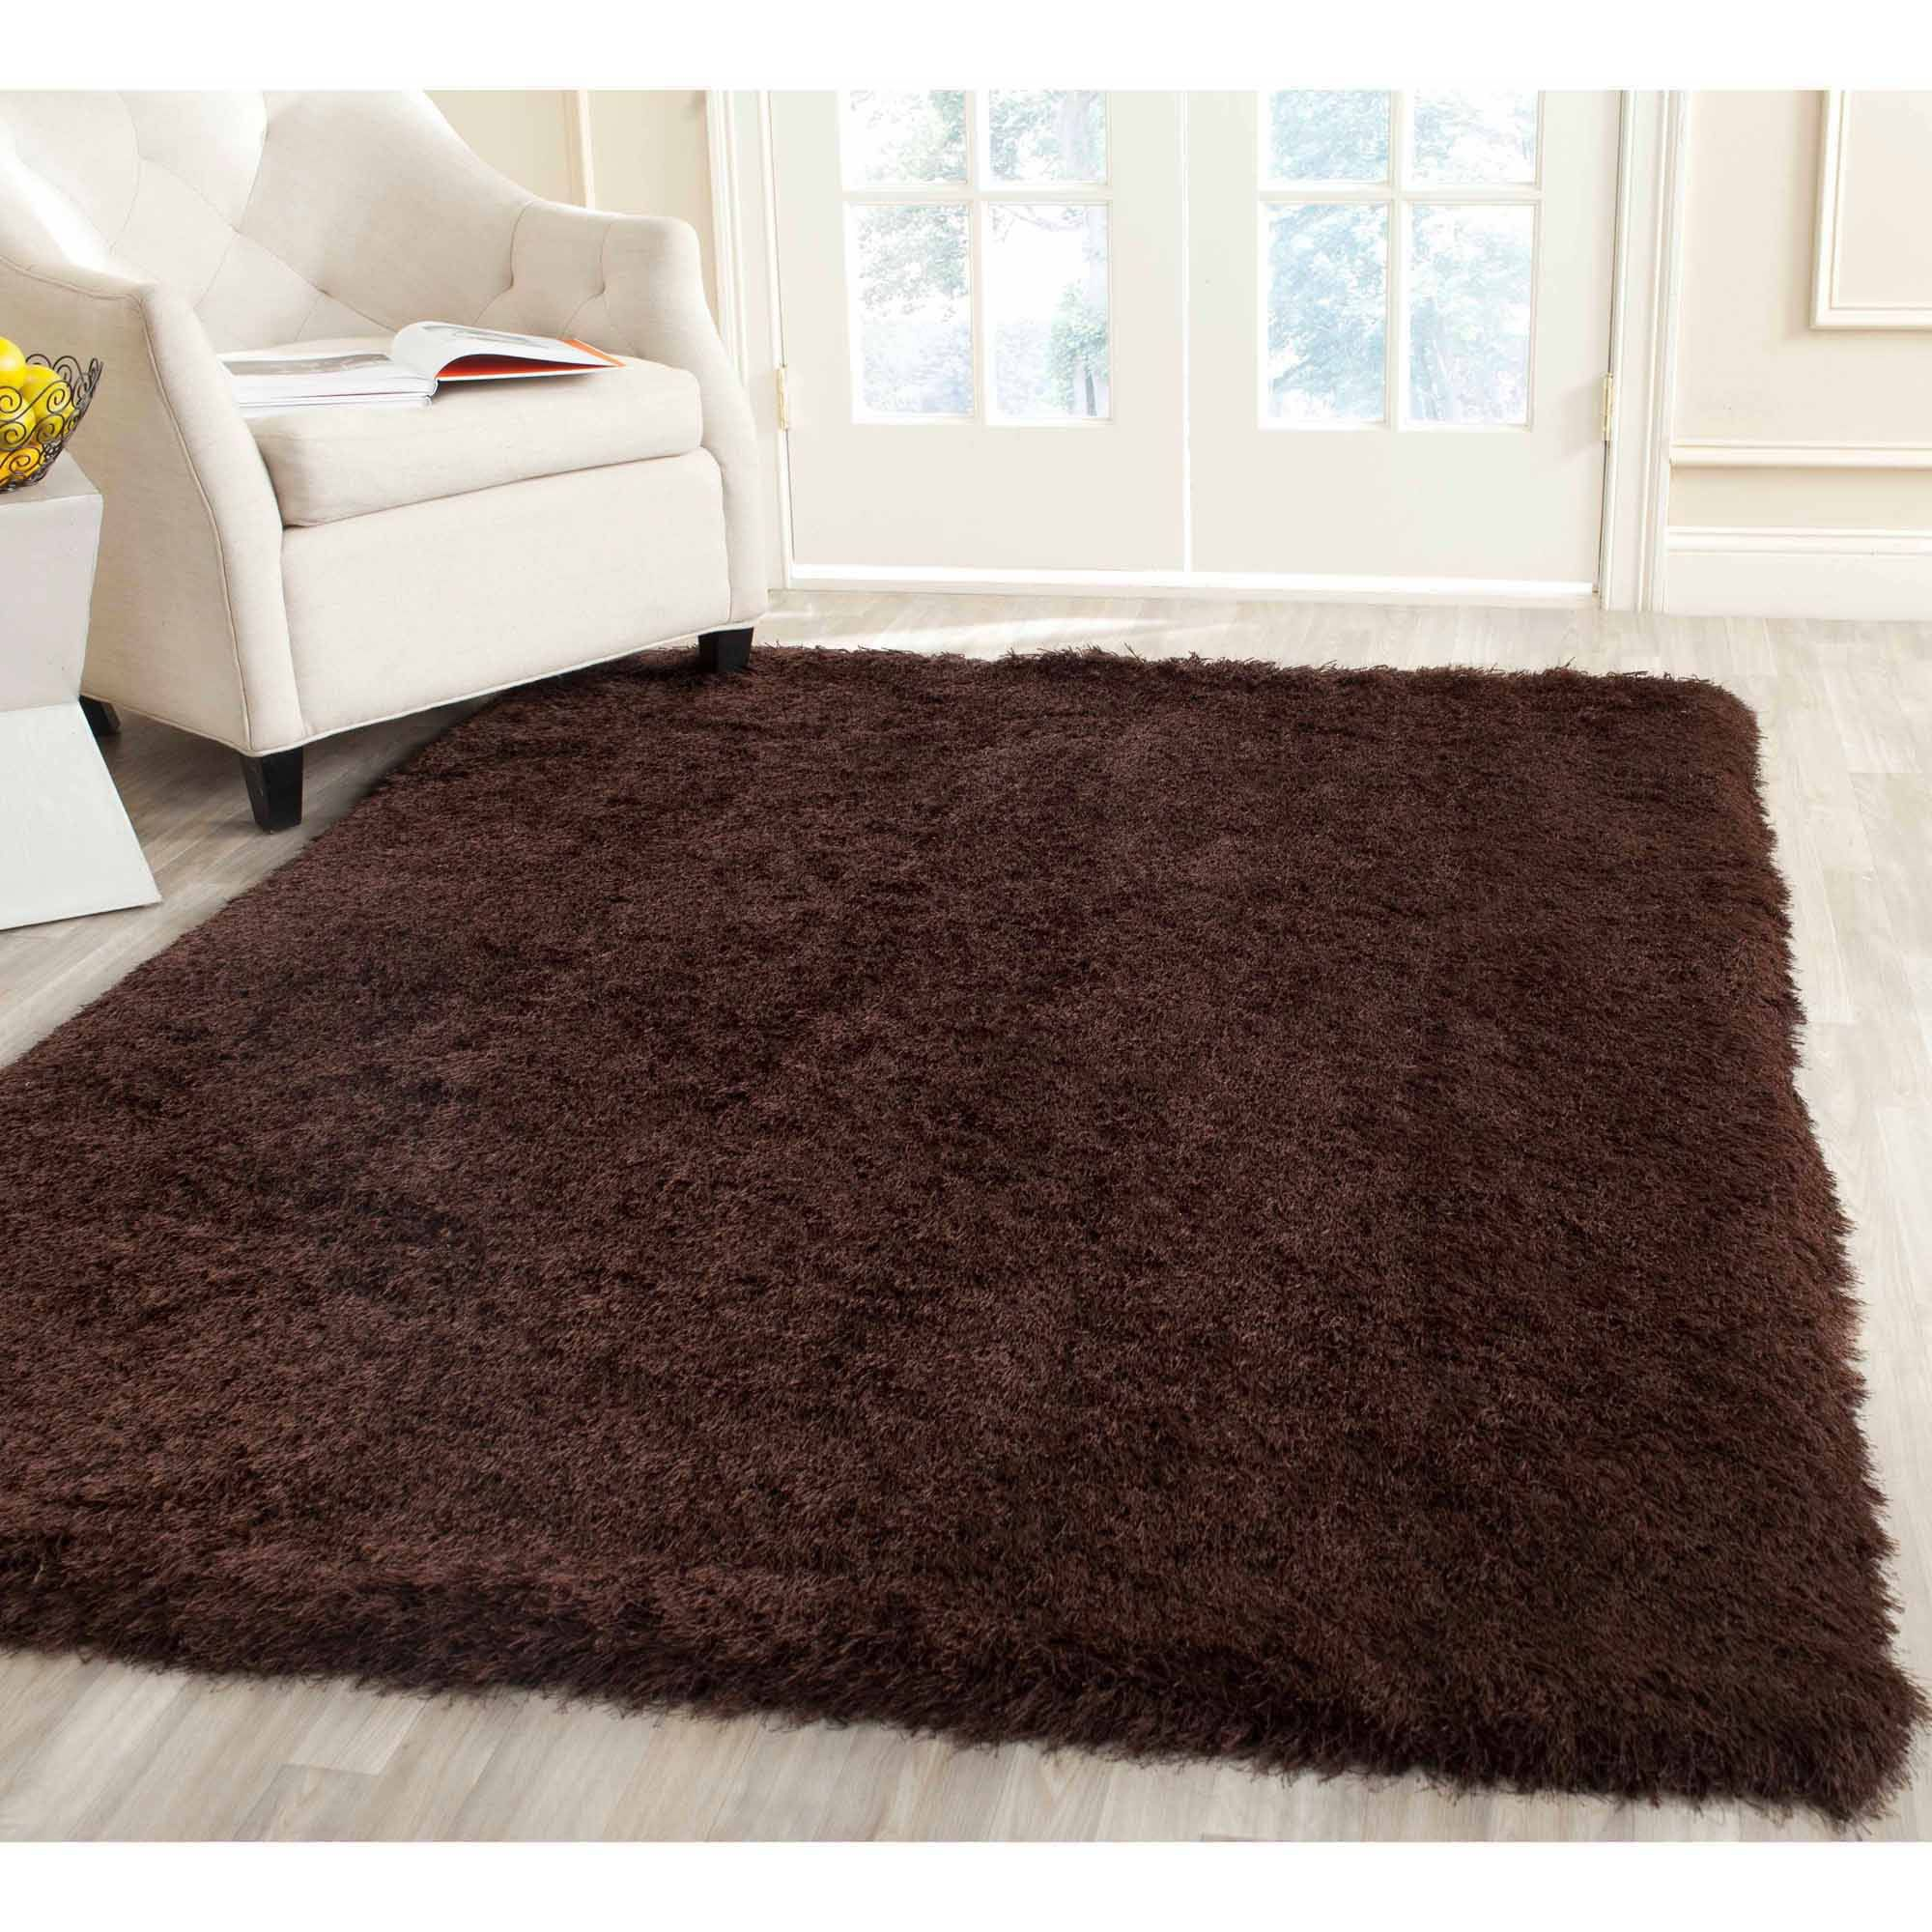 Shaggy Dark Brown Area Rug For Living Room Rugs In Living Room